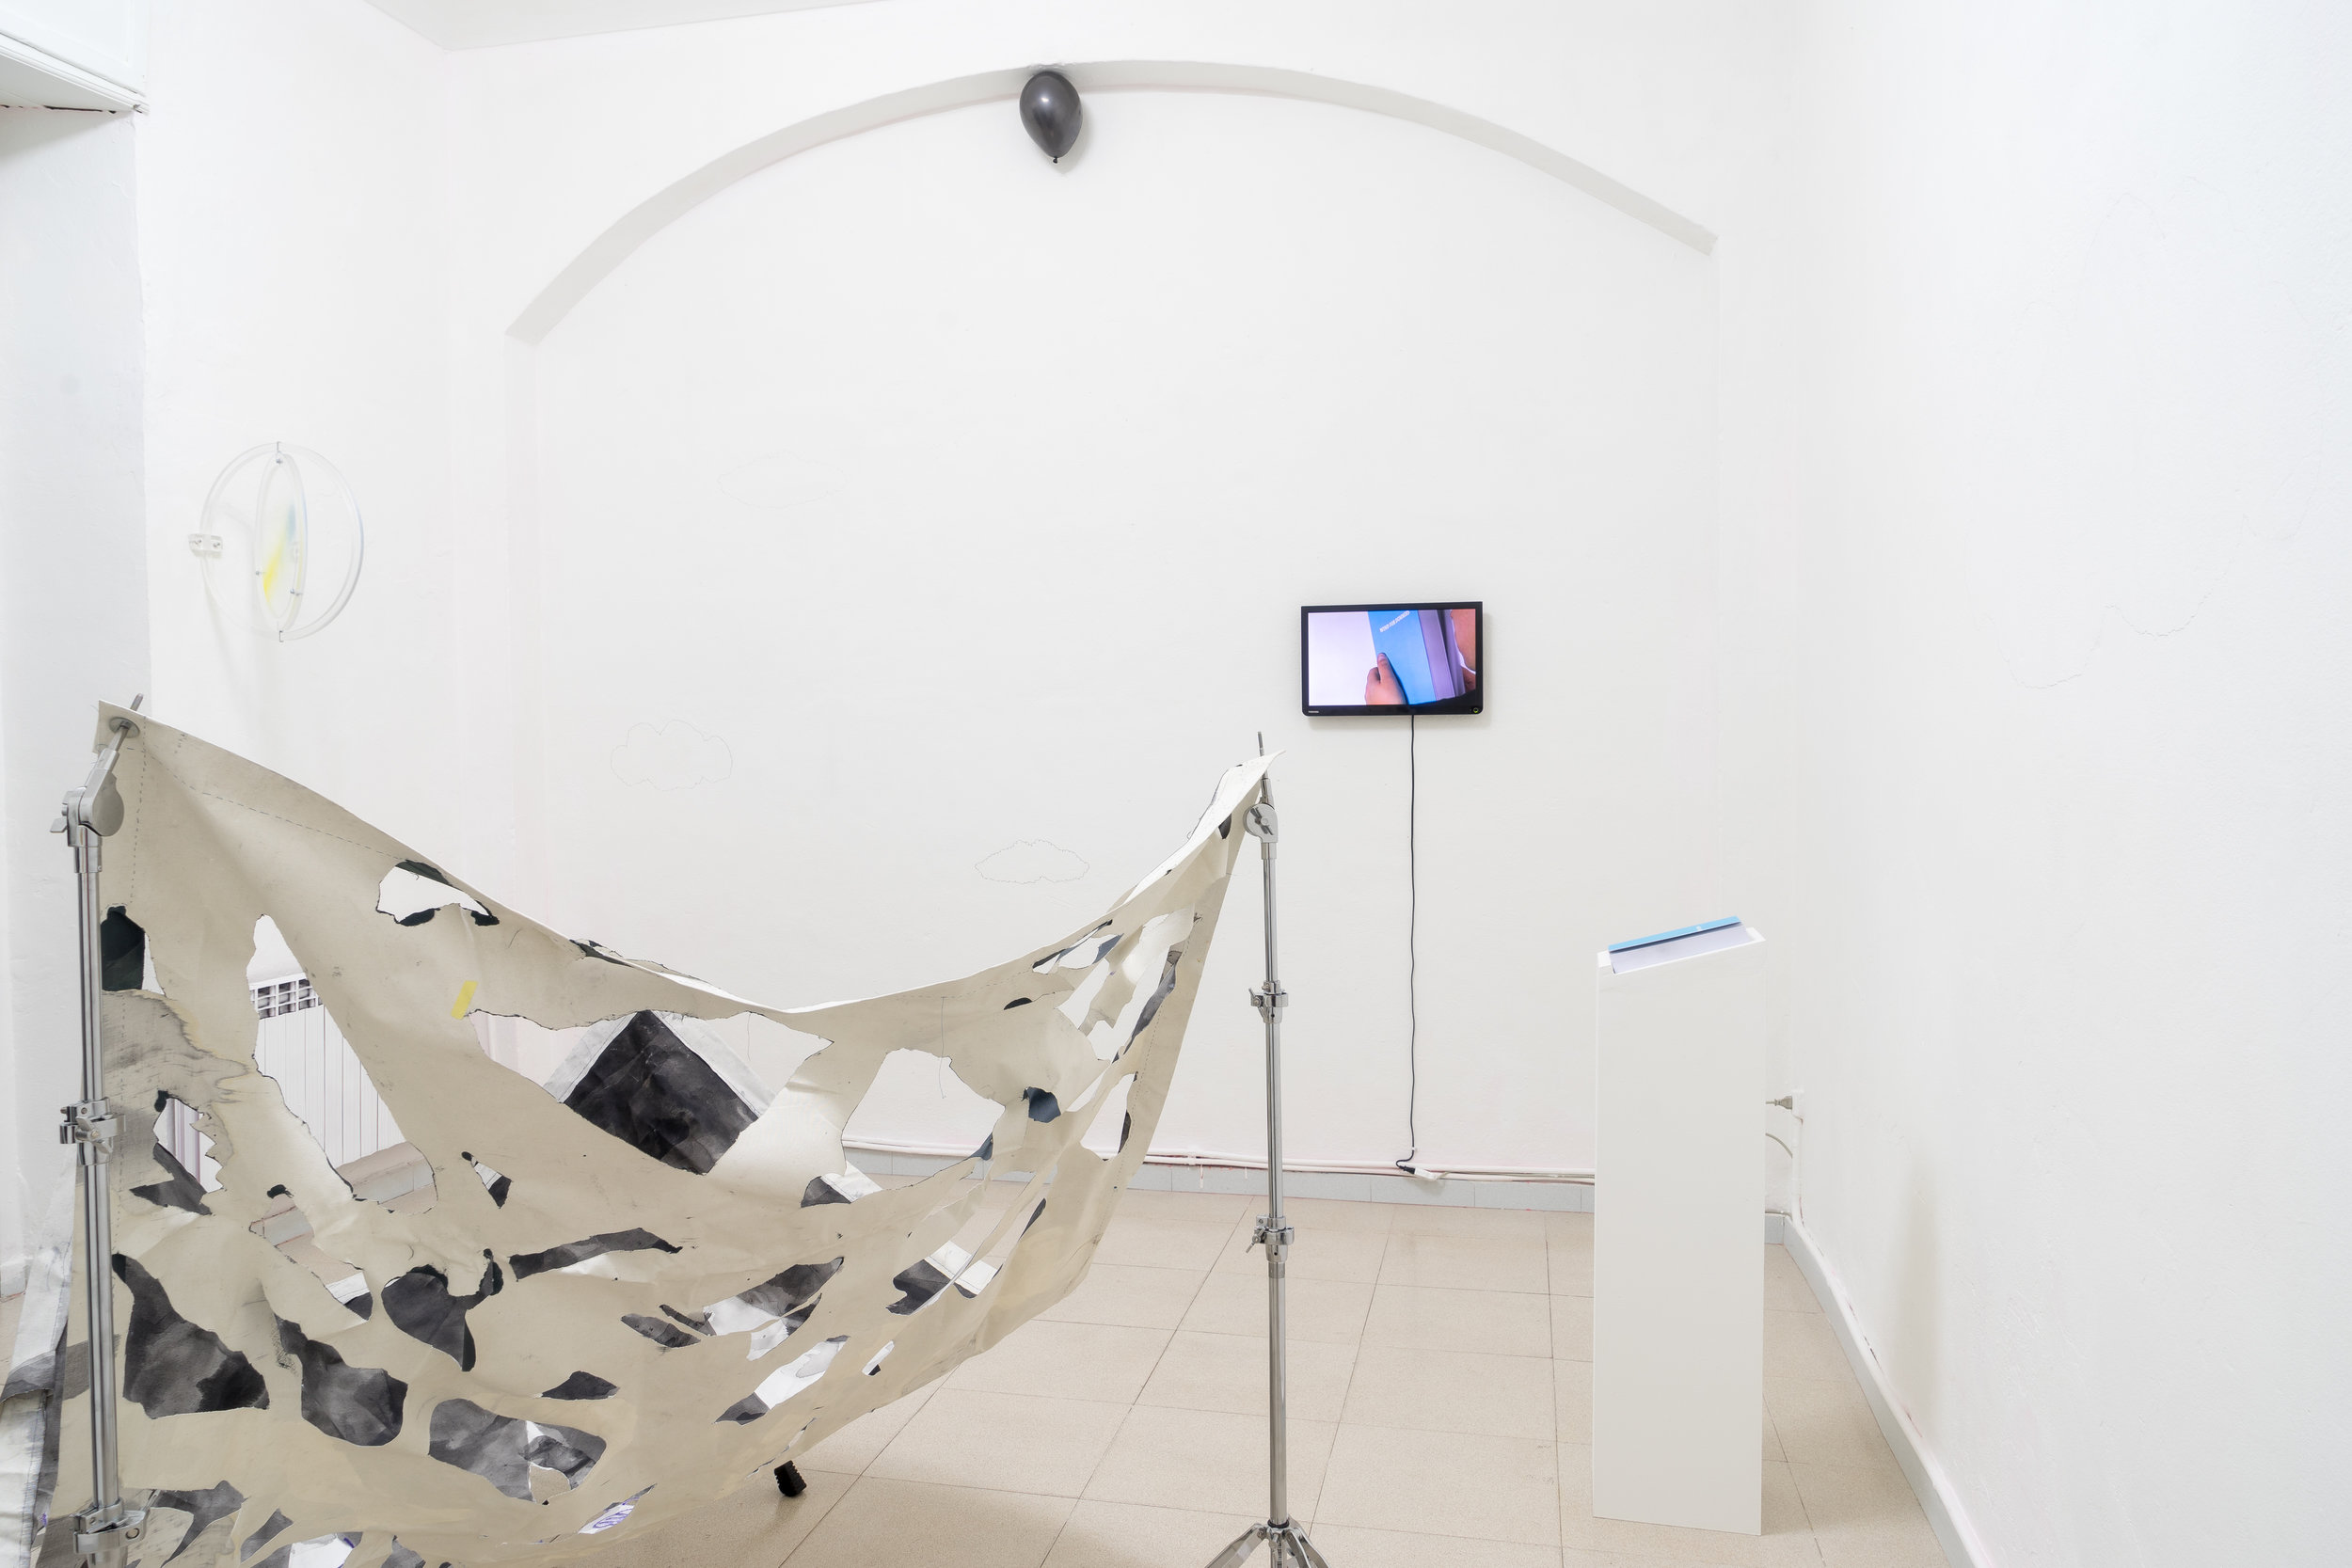 the-theory-of-clouds-spaziobuonasera-2-installation-view.jpg